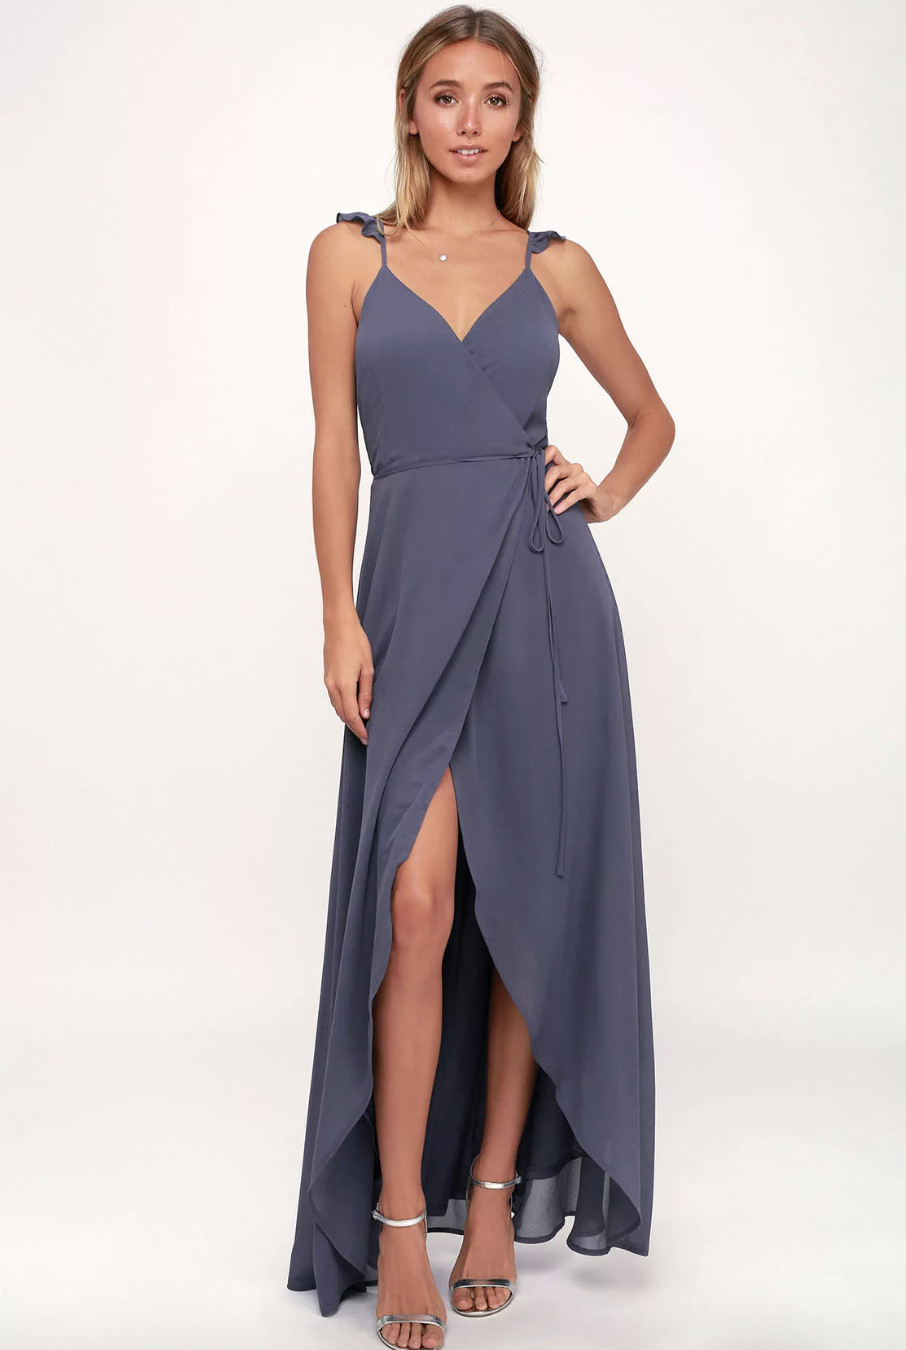 fb54afa27 Inexpensive Bridesmaid Dresses That Look Beautiful · Courtesy of Lulus